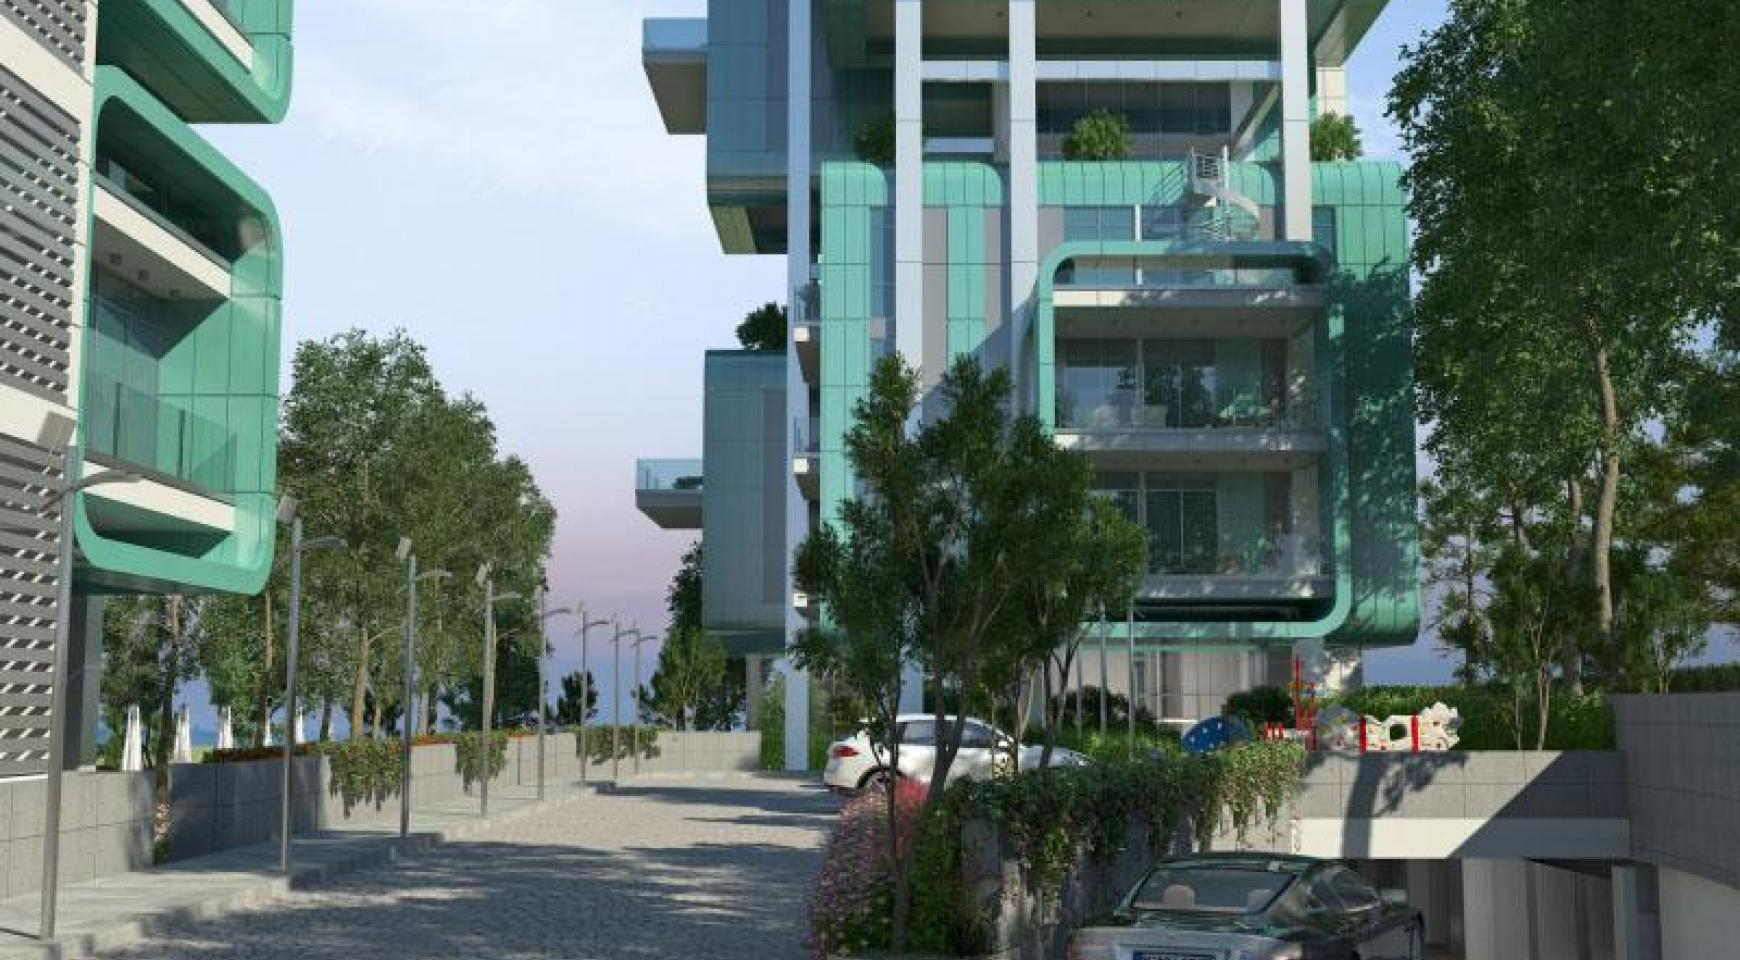 3 Bedroom Apartment with Roof Garden within a New Complex - 33